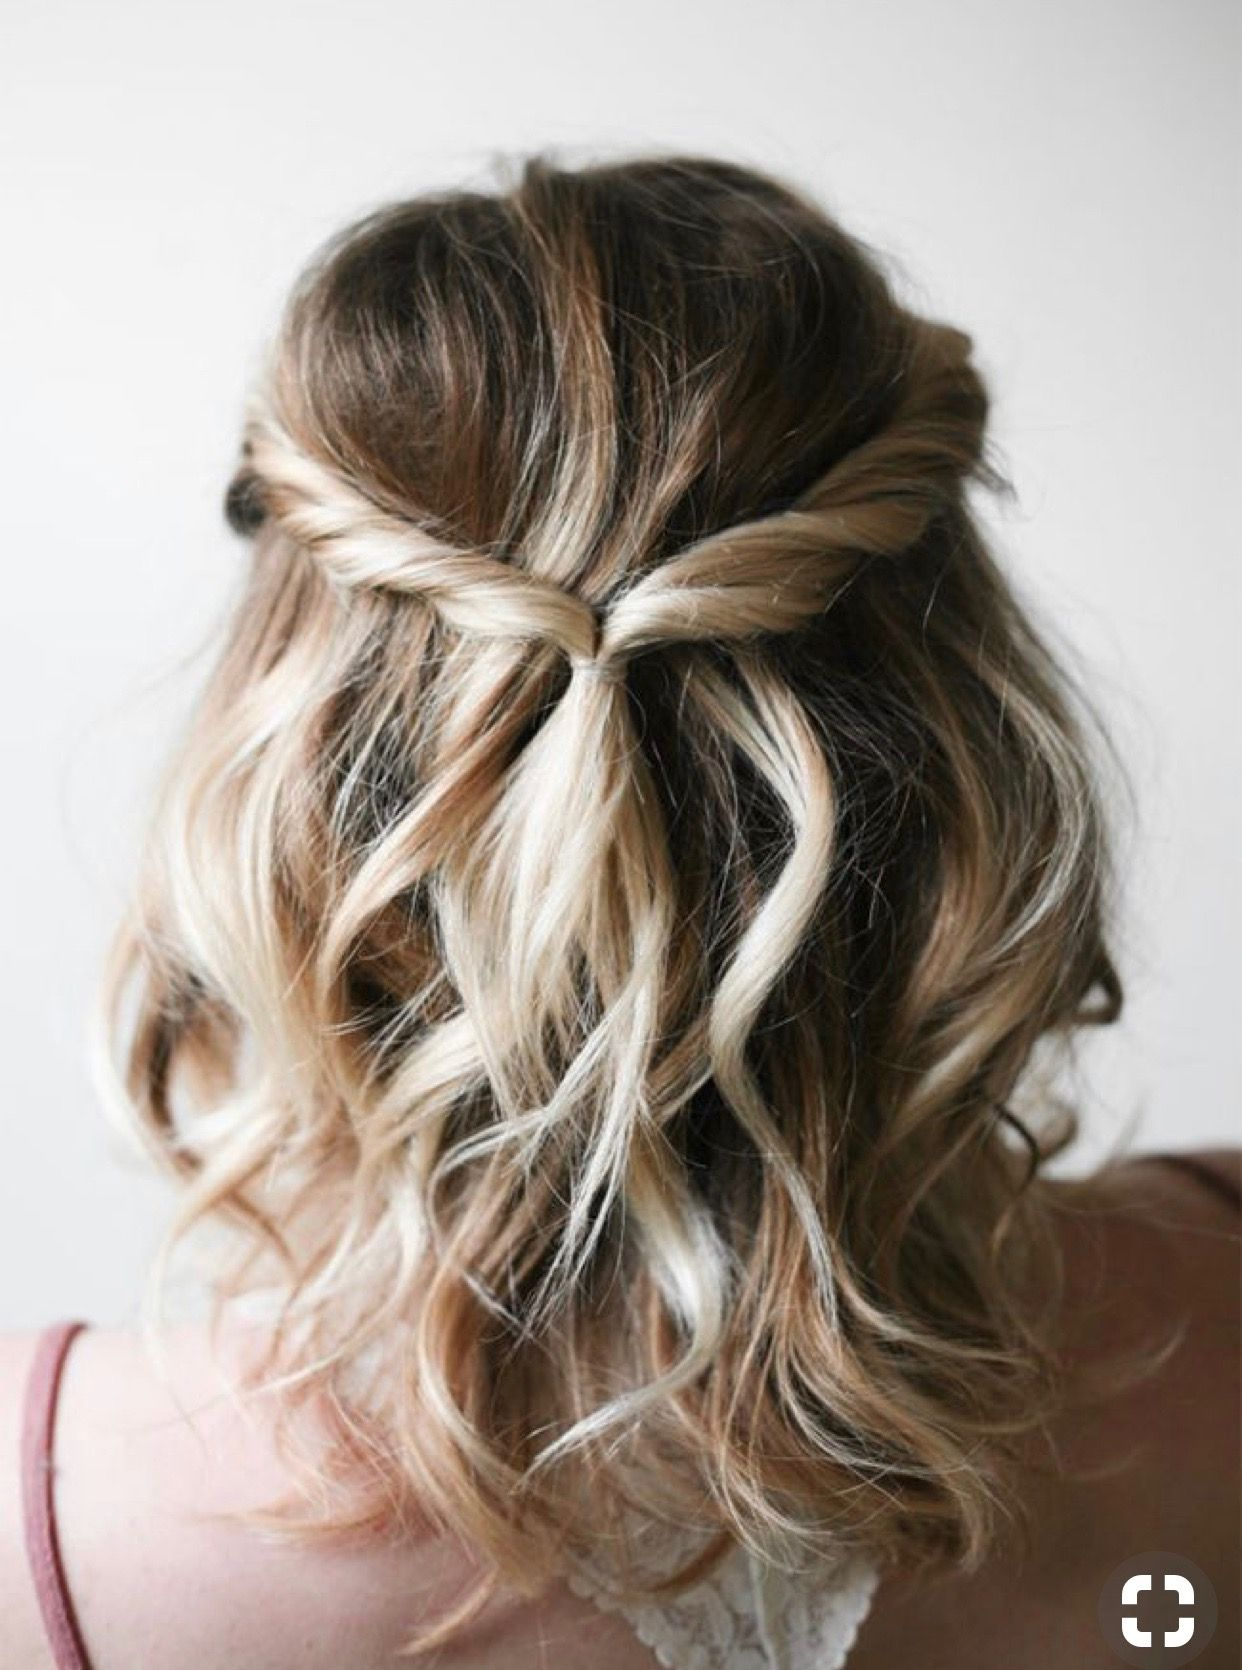 Hairstyles For Medium Length Hair Women S Hair Easy Hairstyles Wedding Hairstyles For Medium Hair Medium Length Hair Styles Cute Hairstyles For Medium Hair